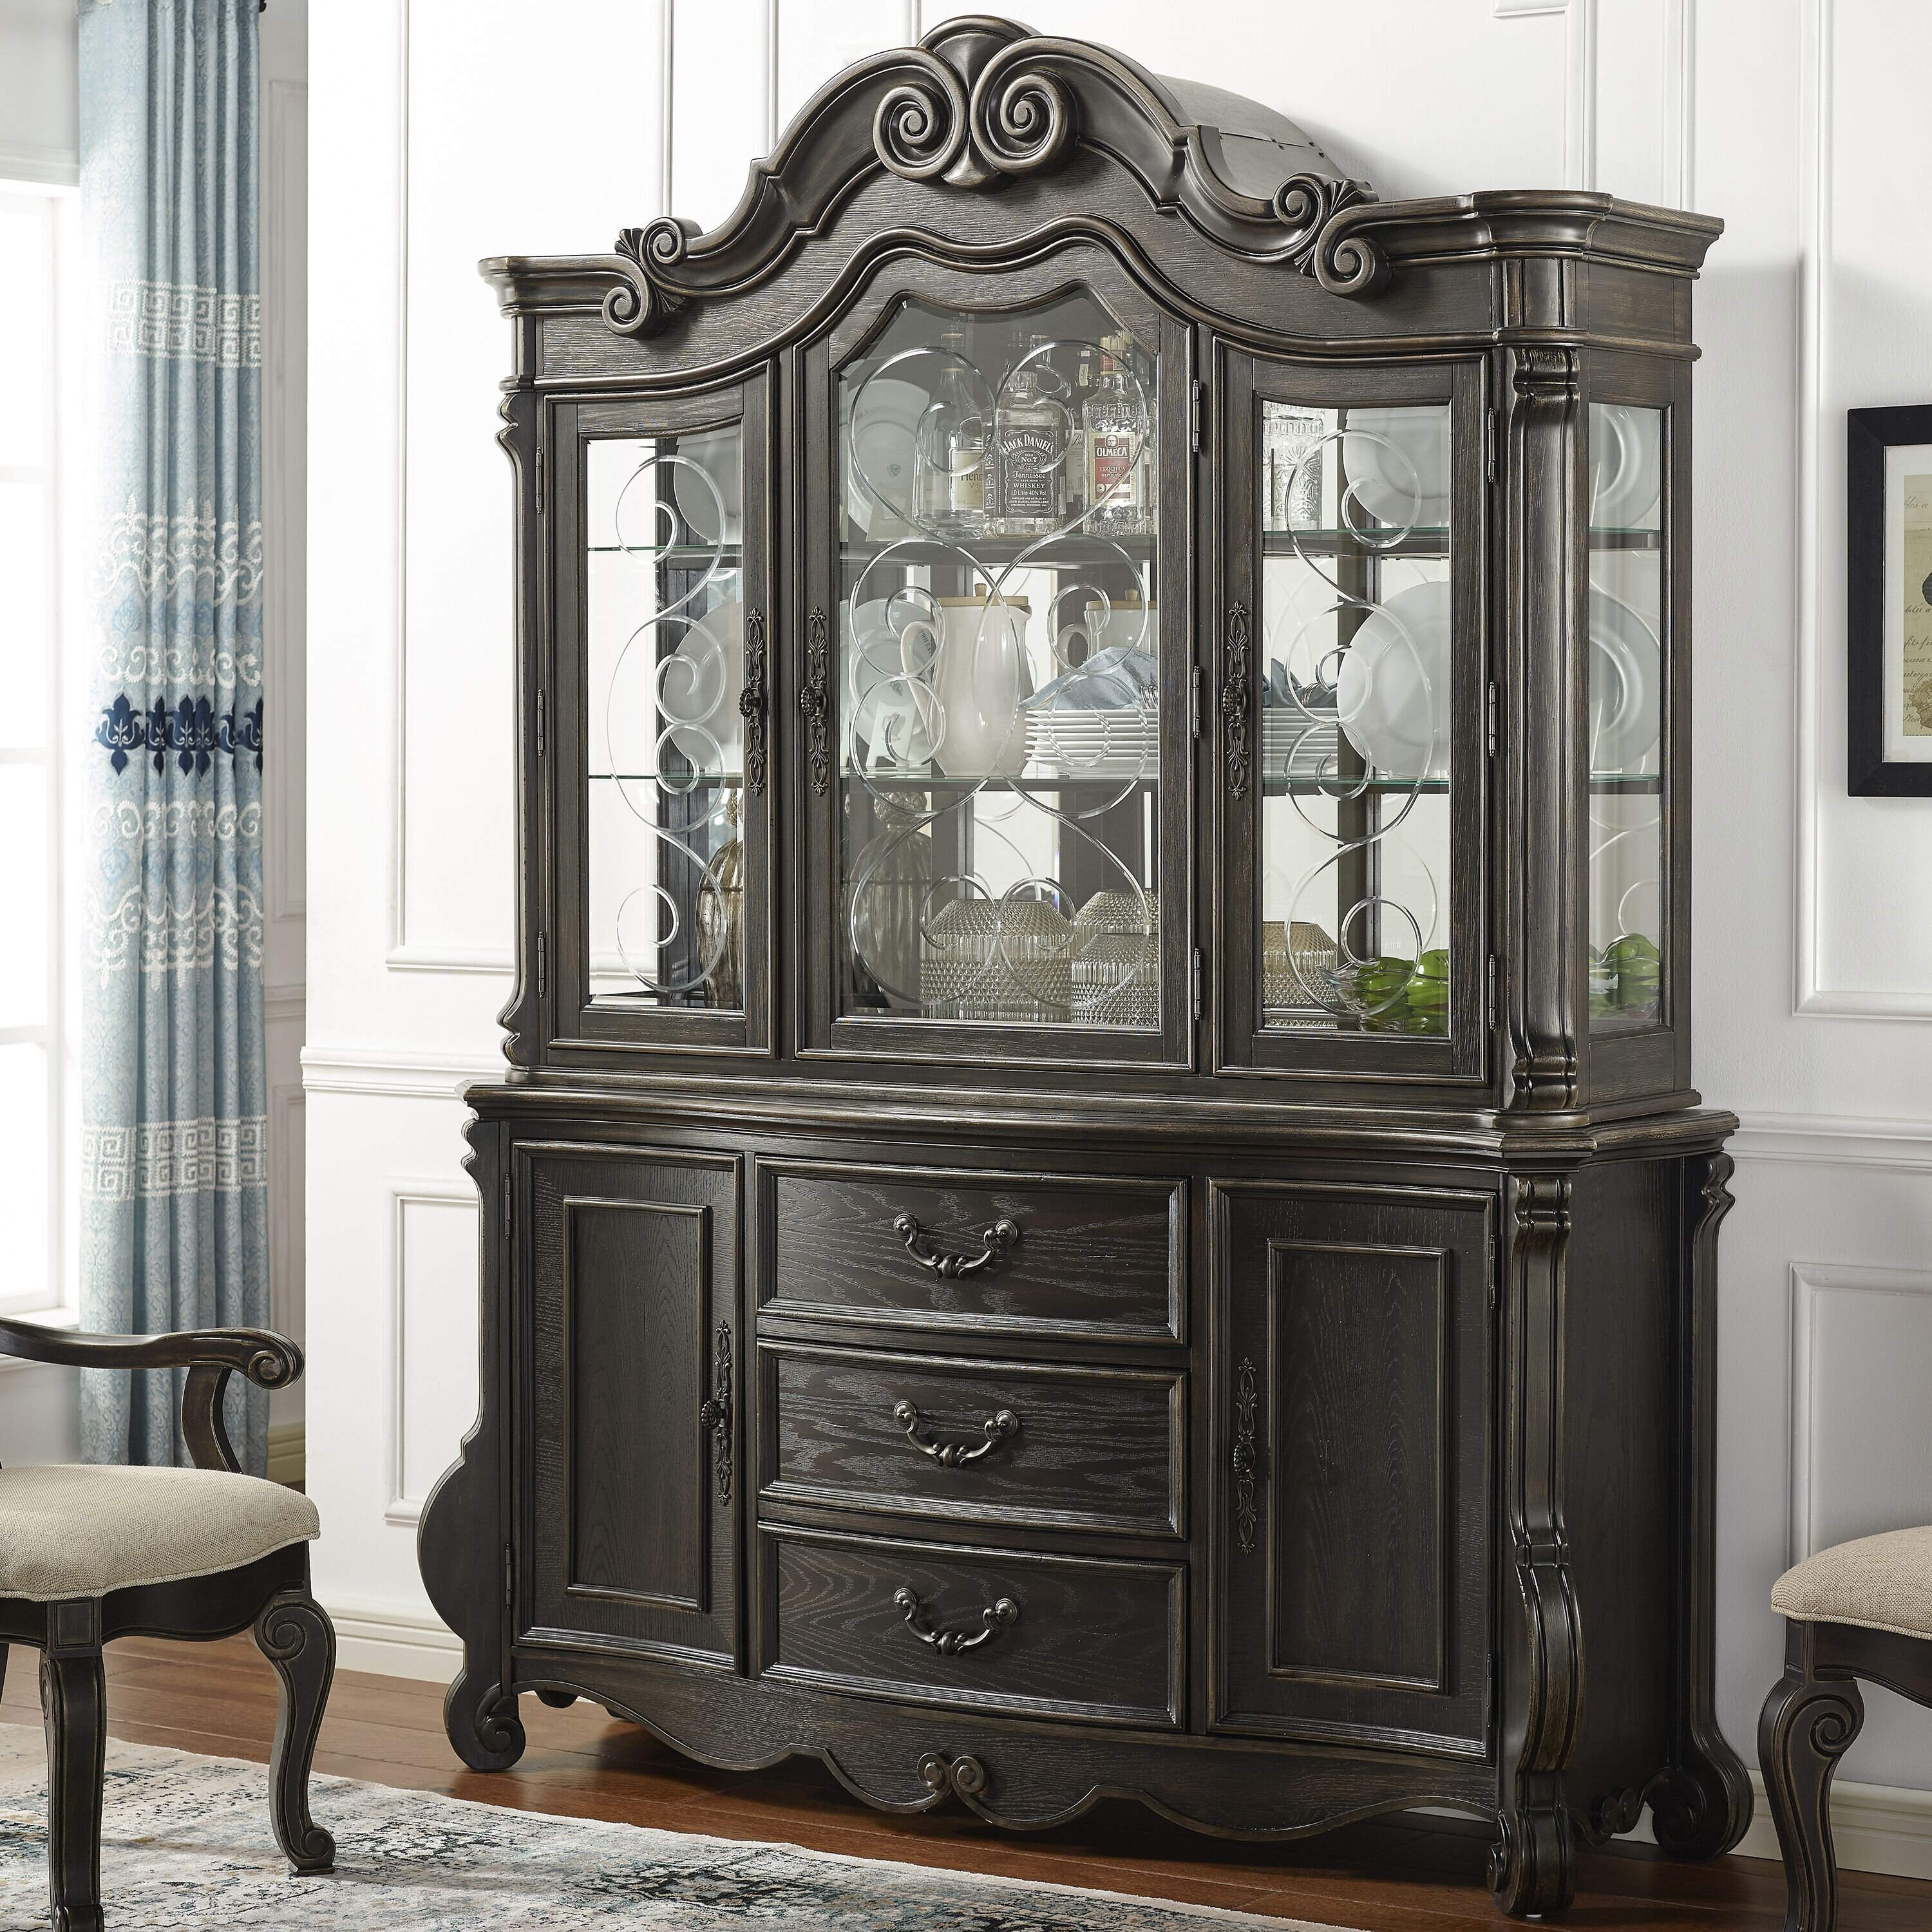 China Cabinet Astoria Grand Display China Cabinets You Ll Love In 2021 Wayfair